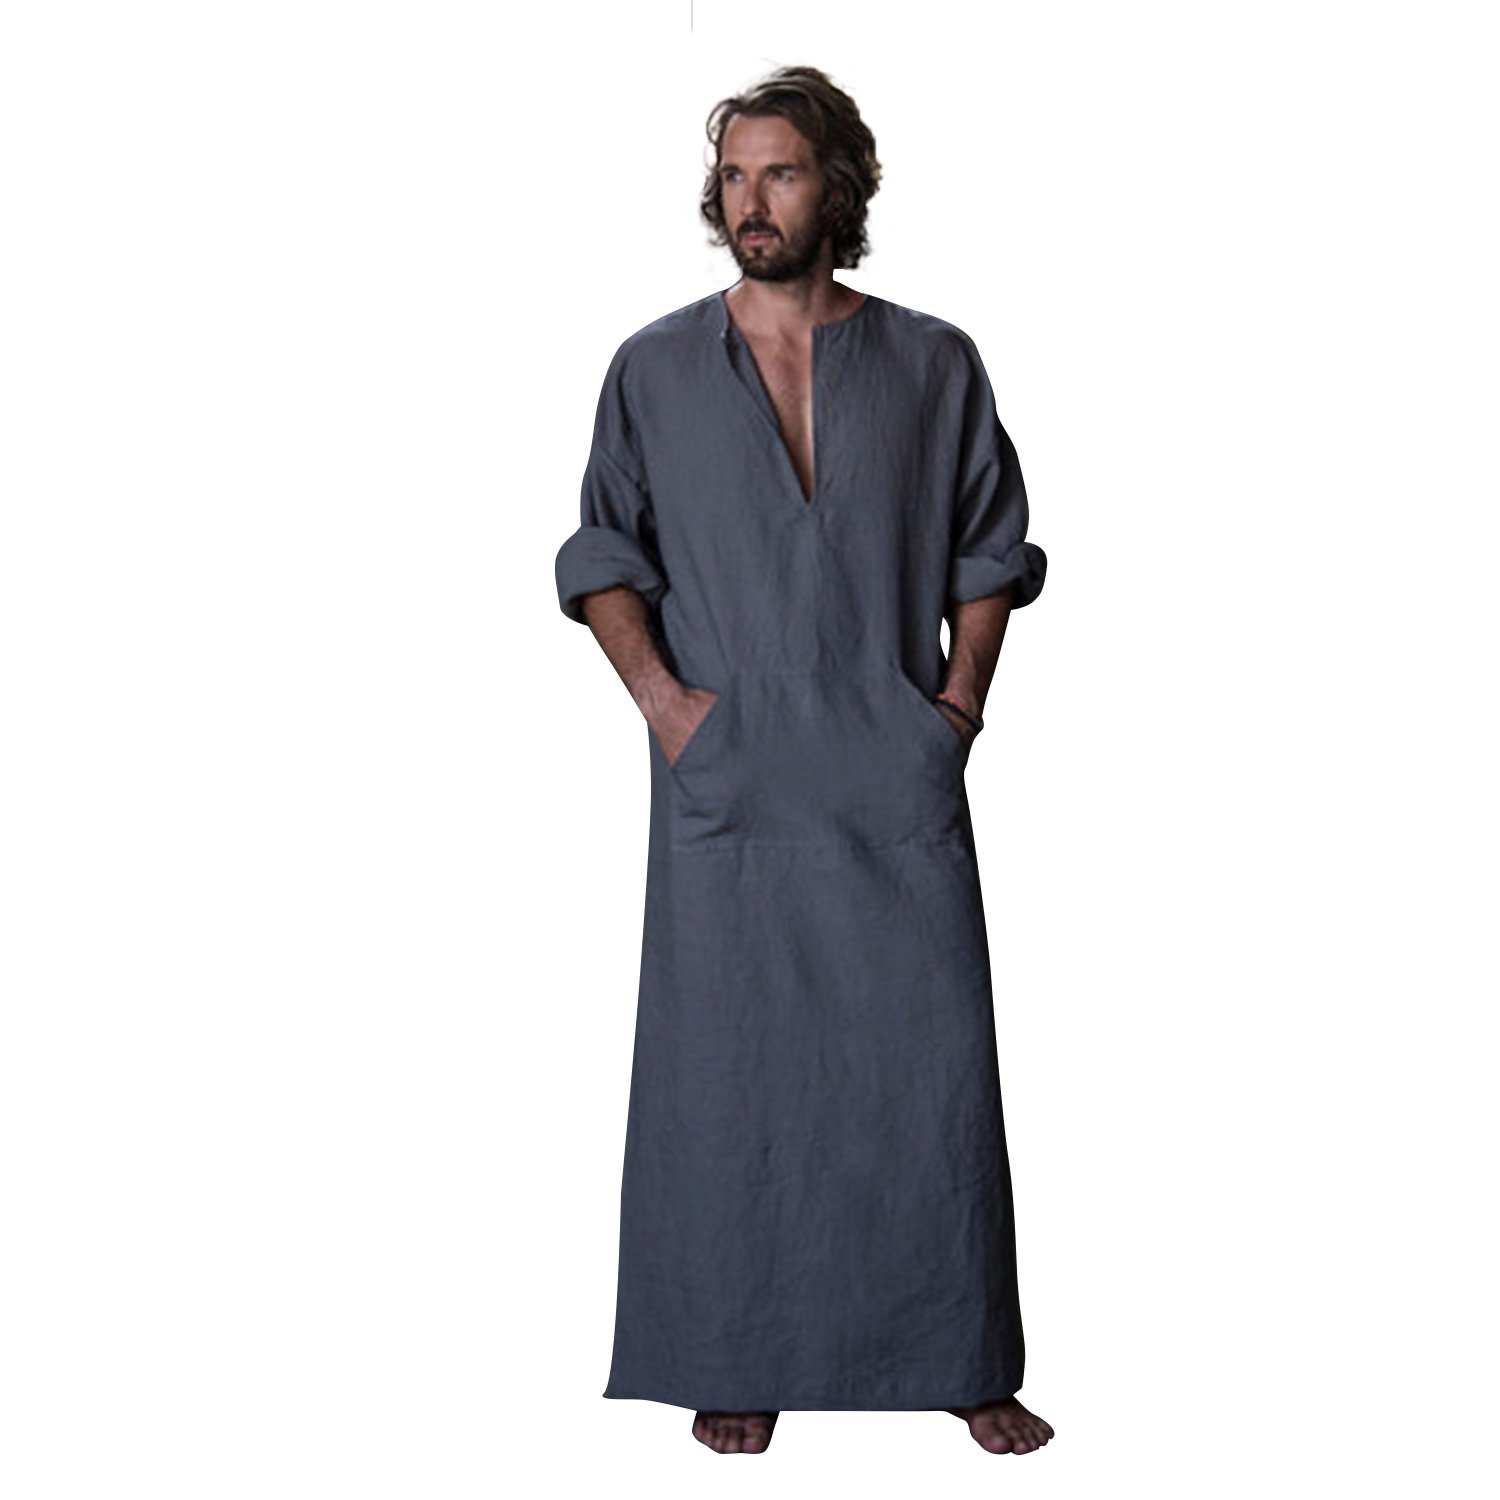 7 VEILS Mens Cotton and Linen Ultra Long Ankle-Length Robe Bathrobe Gown -Greyish Blue-XL